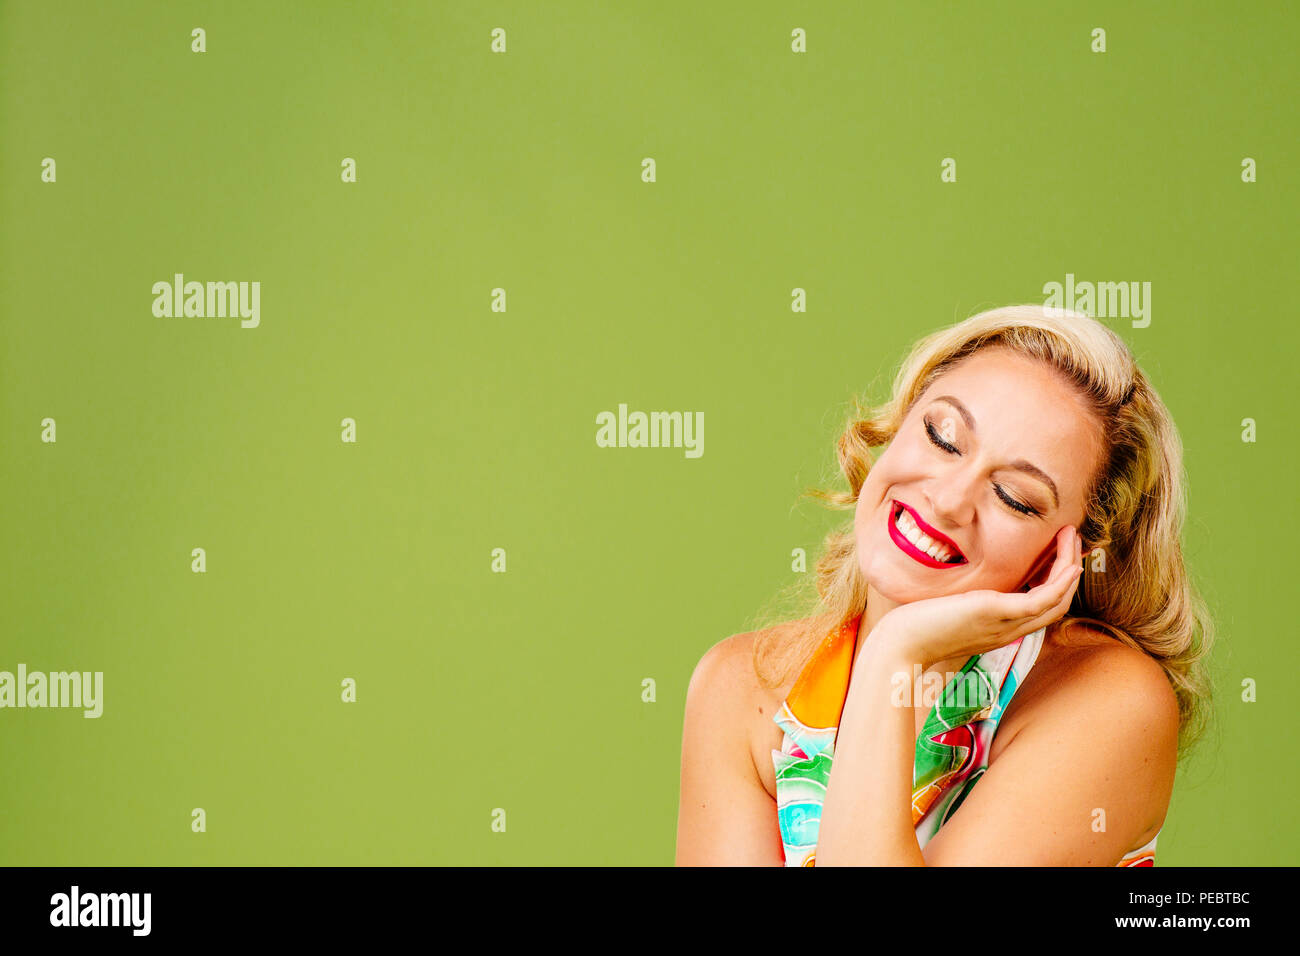 Happy smiling blonde woman with eyes closed, isolé sur fond vert studio Photo Stock